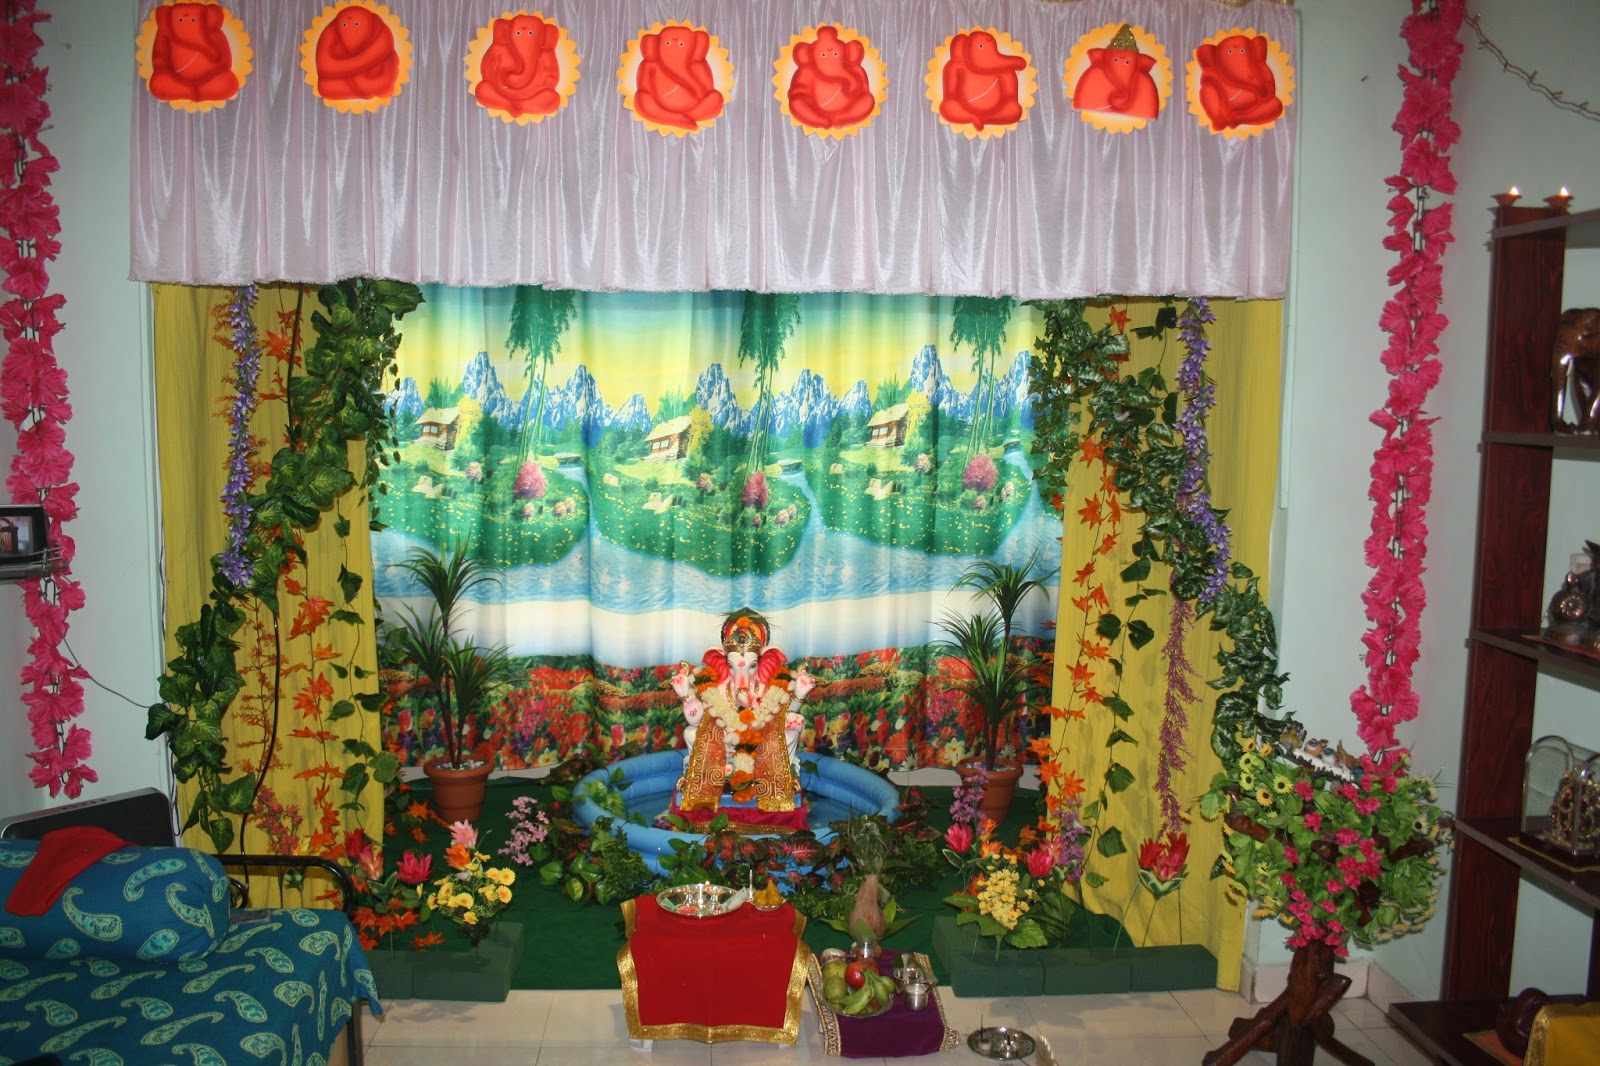 Ganpati decoration ideas joy studio design gallery for Decoration ganpati